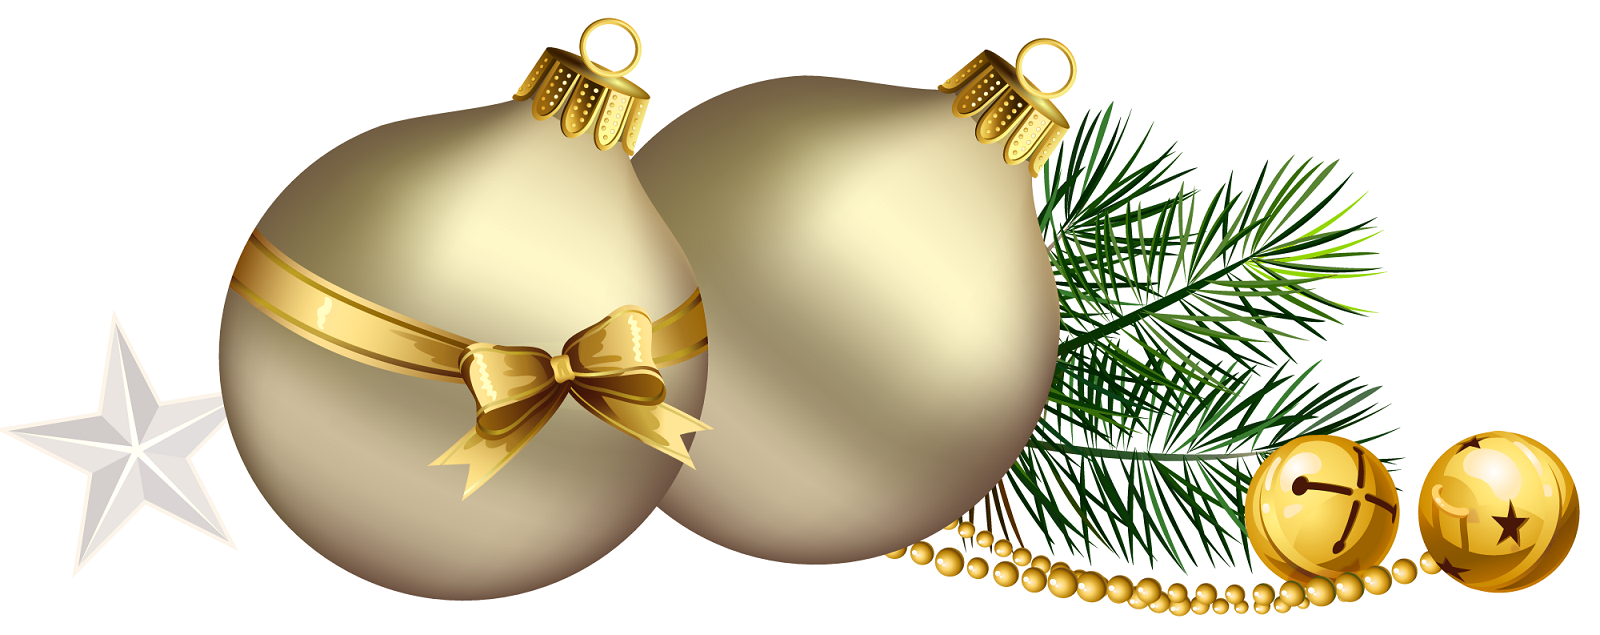 11++ Gold christmas star clipart ideas in 2021